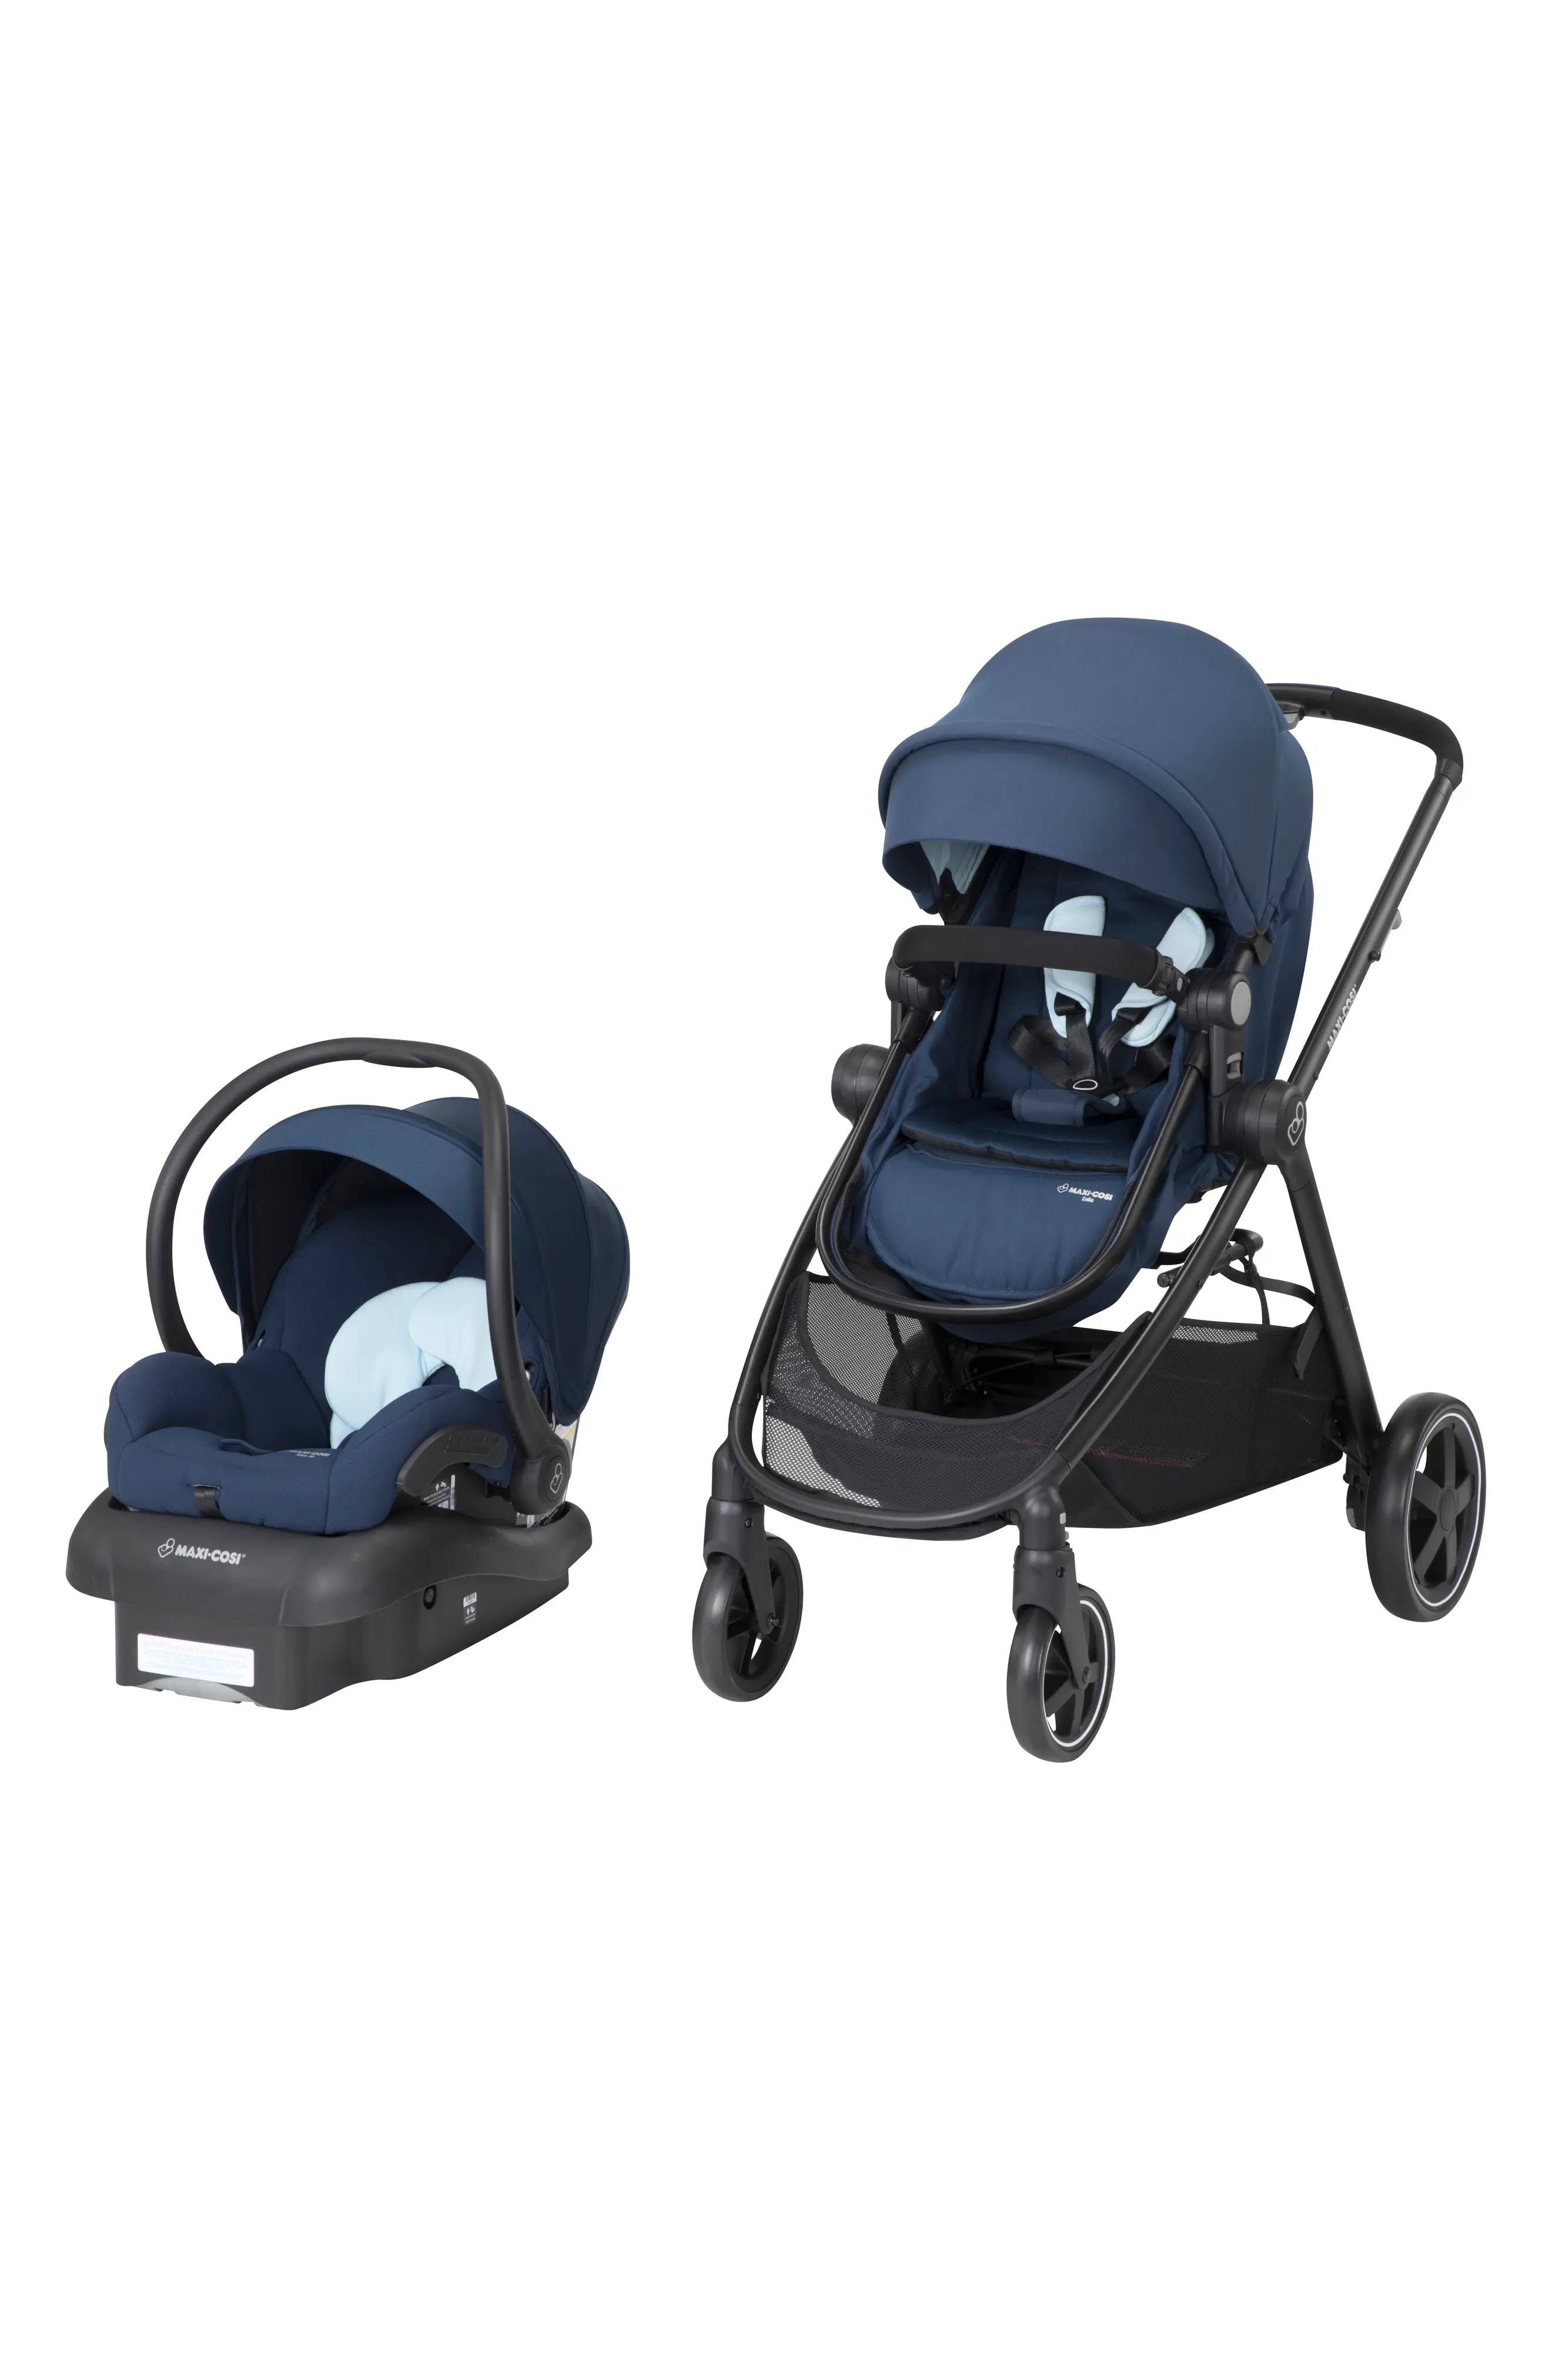 Oyster Double Pram Mothercare Best Prams And Pushchairs For Your Newborn Baby 2019